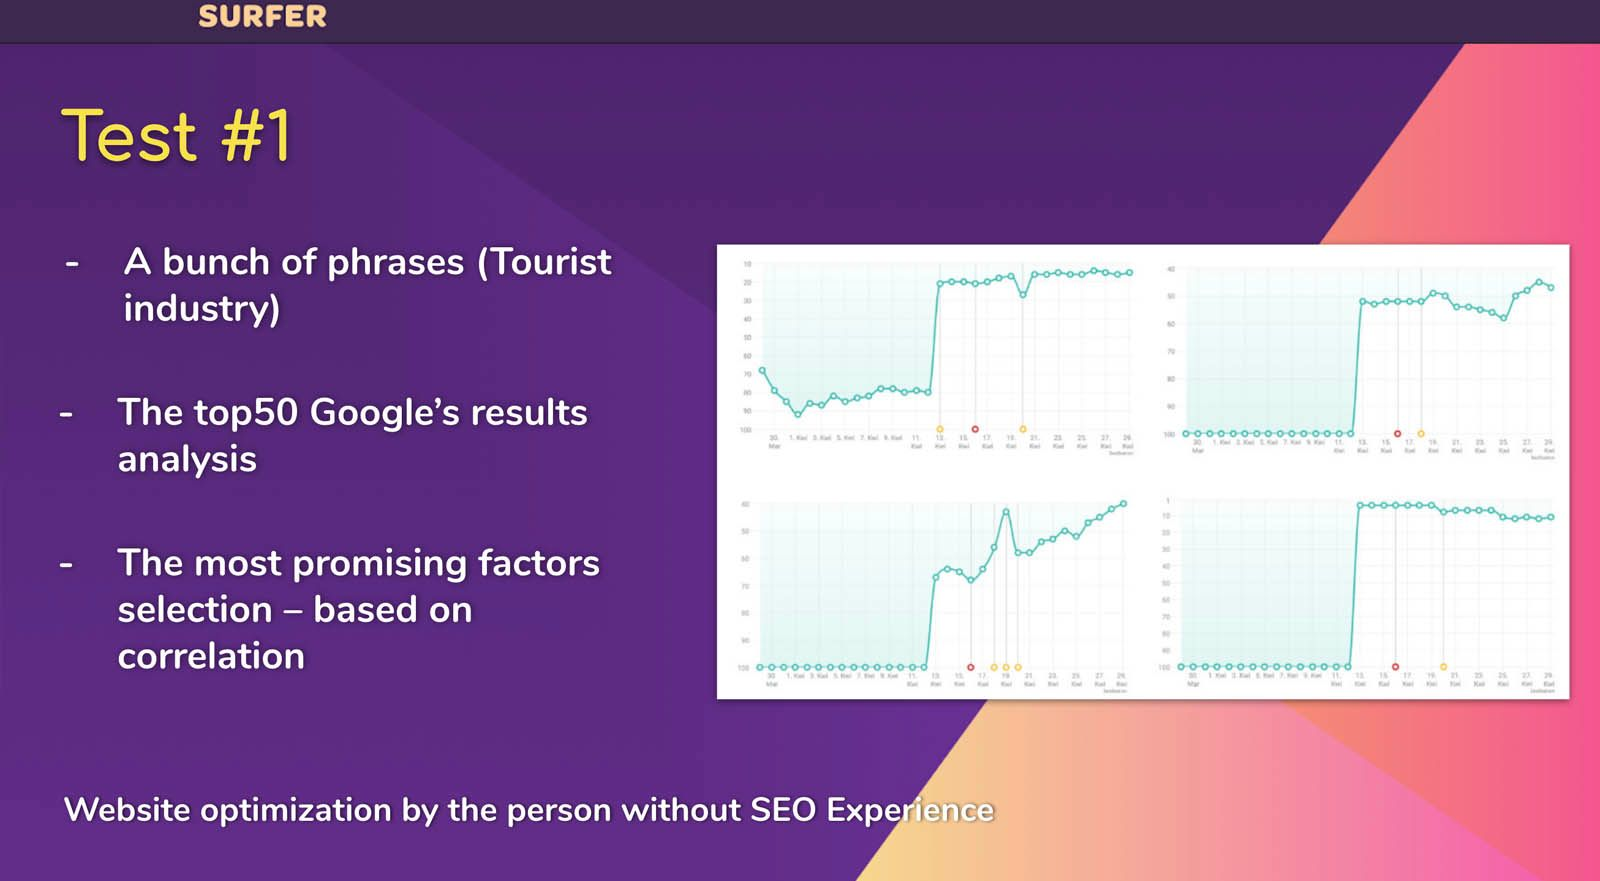 SurferSEO - Website Optimisation by the person without SEO Experience